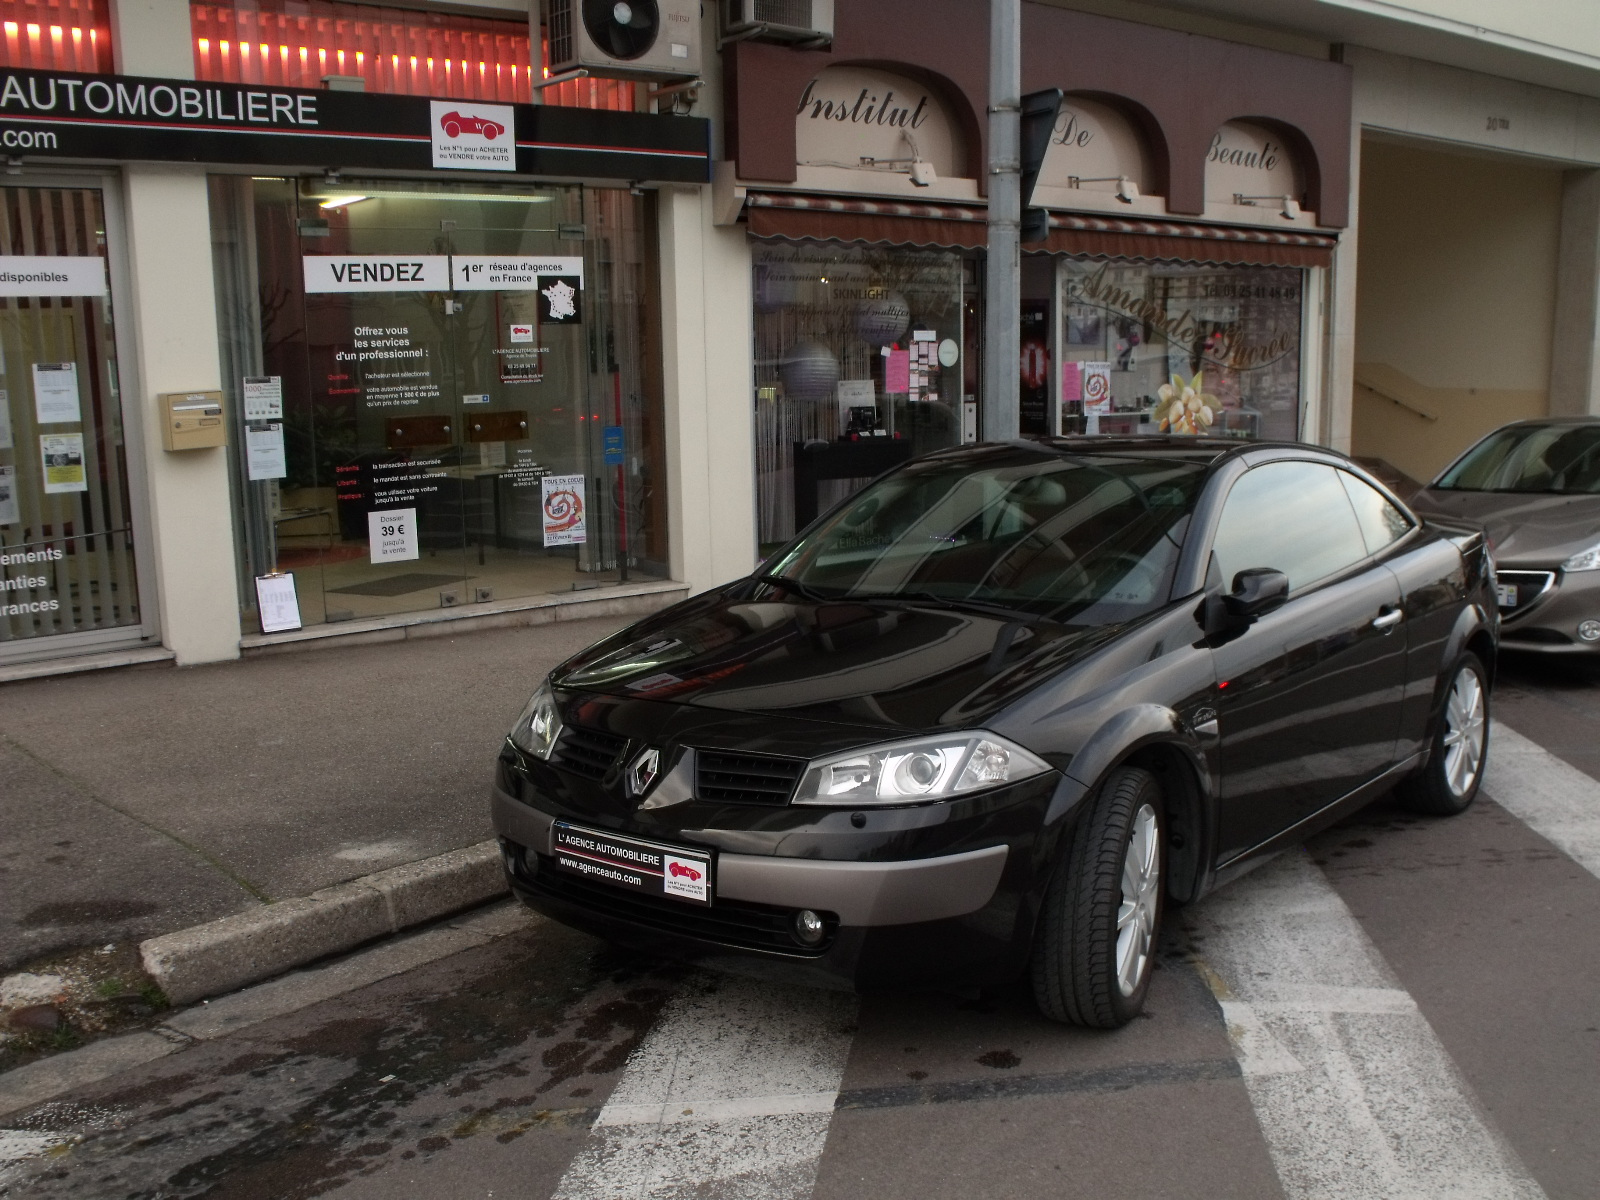 renault megane ii cc 1 9 dci 120 luxe dynamique occasion troyes pas cher voiture occasion aube. Black Bedroom Furniture Sets. Home Design Ideas